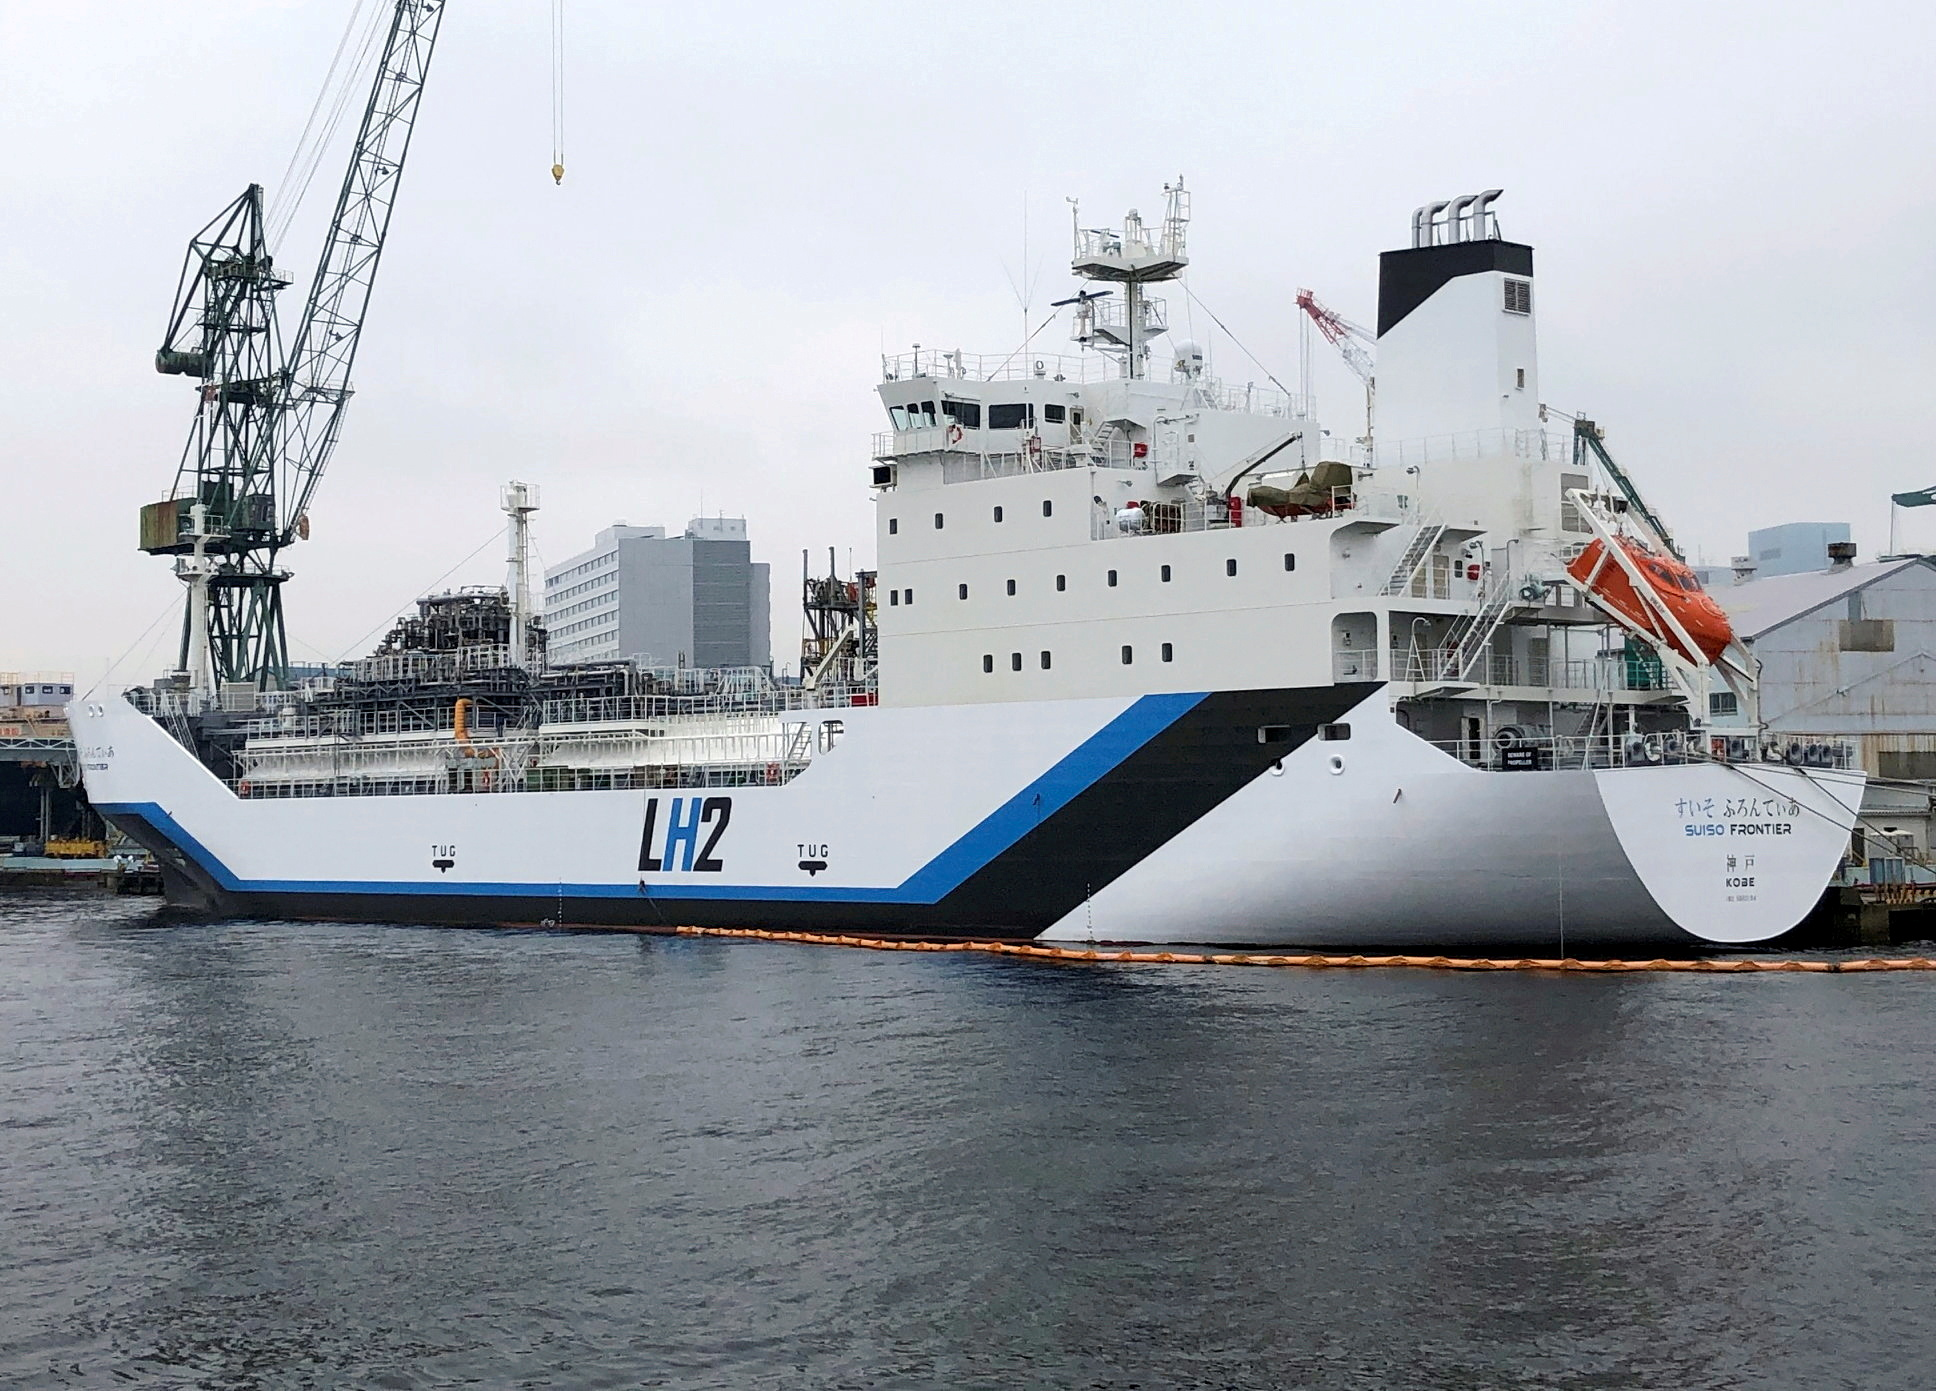 The liquefied hydrogen carrier SUISO FRONTIER, built by Kawasaki Heavy Industries and due to transport its first cargo of hydrogen extracted from brown coal from Australia to Japan, is docked at Kobe Works yard in Kobe, western Japan January 22, 2021. Picture taken January 22, 2021. REUTERS/Yuka Obayashi/File Photo